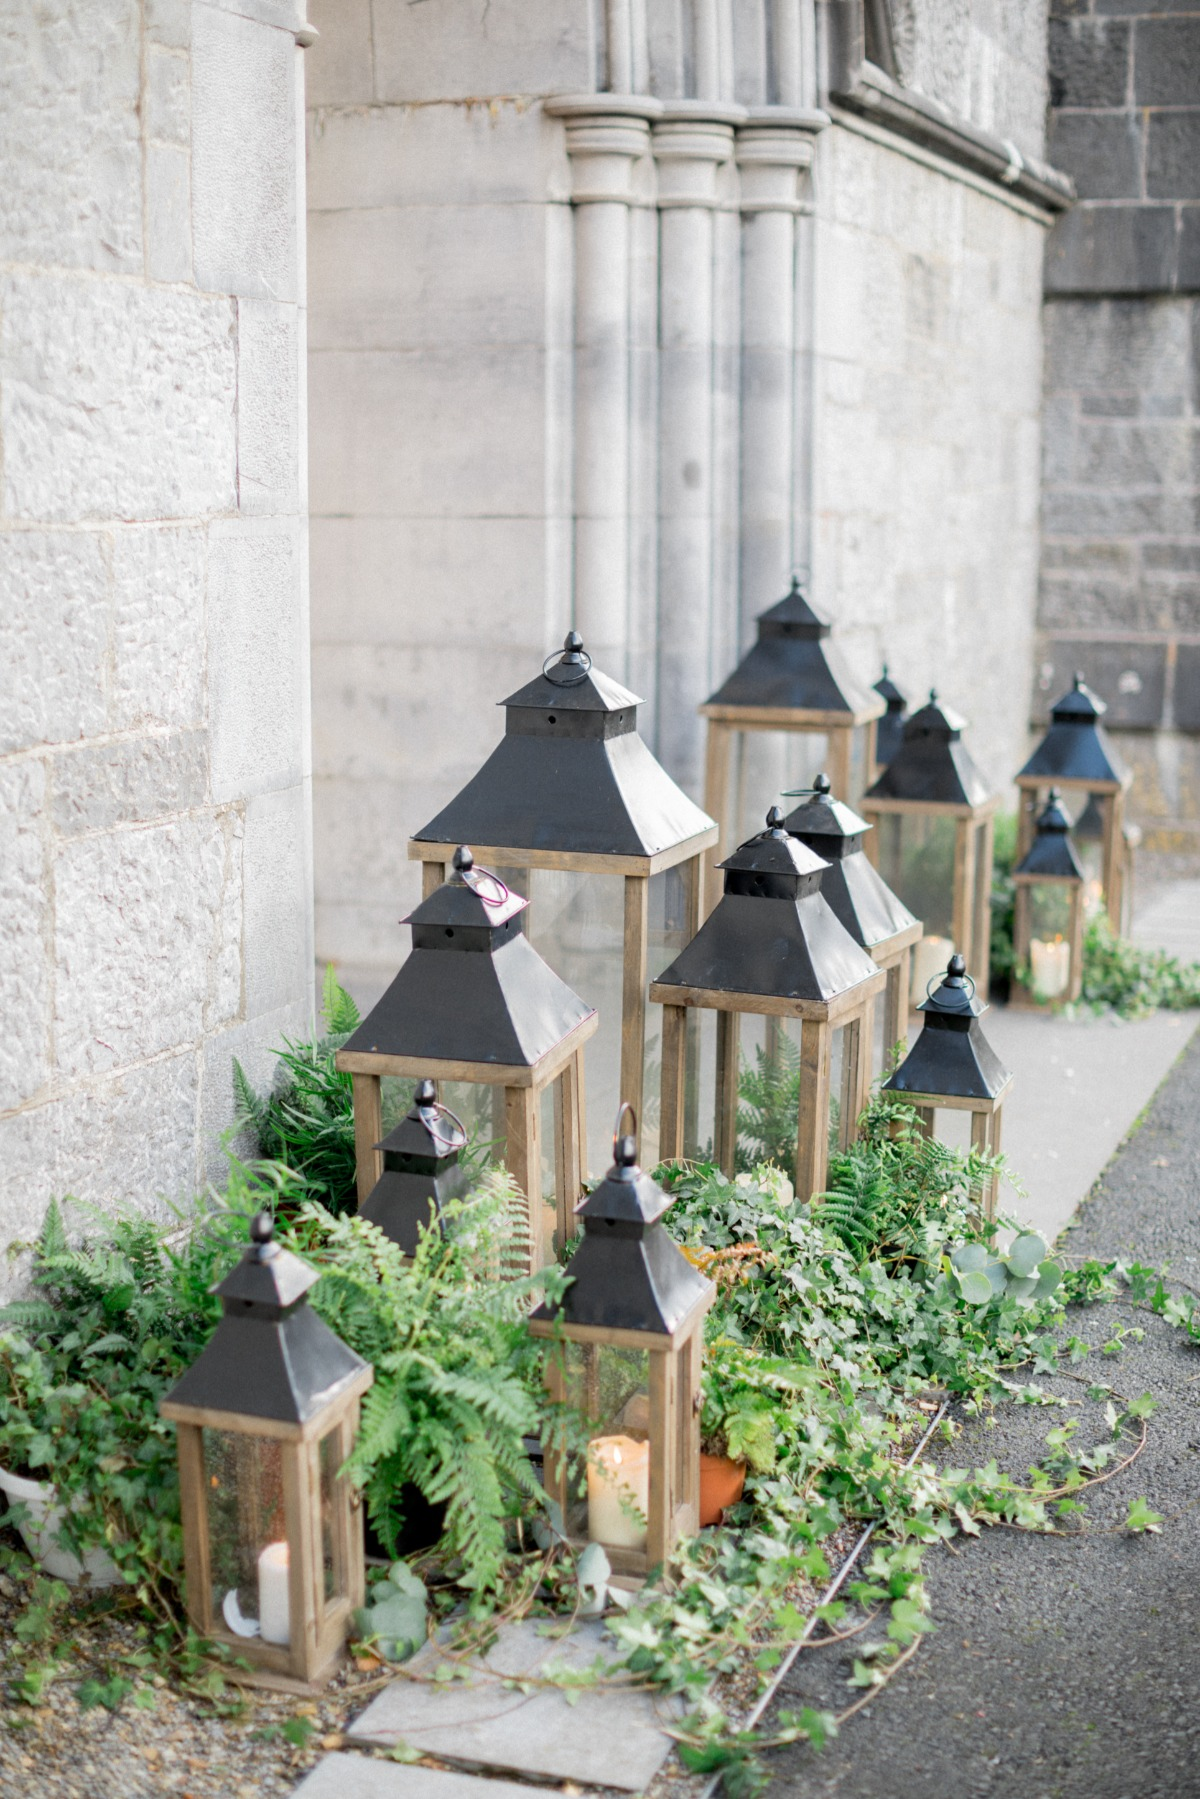 Church decorated with ivy and lanterns for wedding ceremony